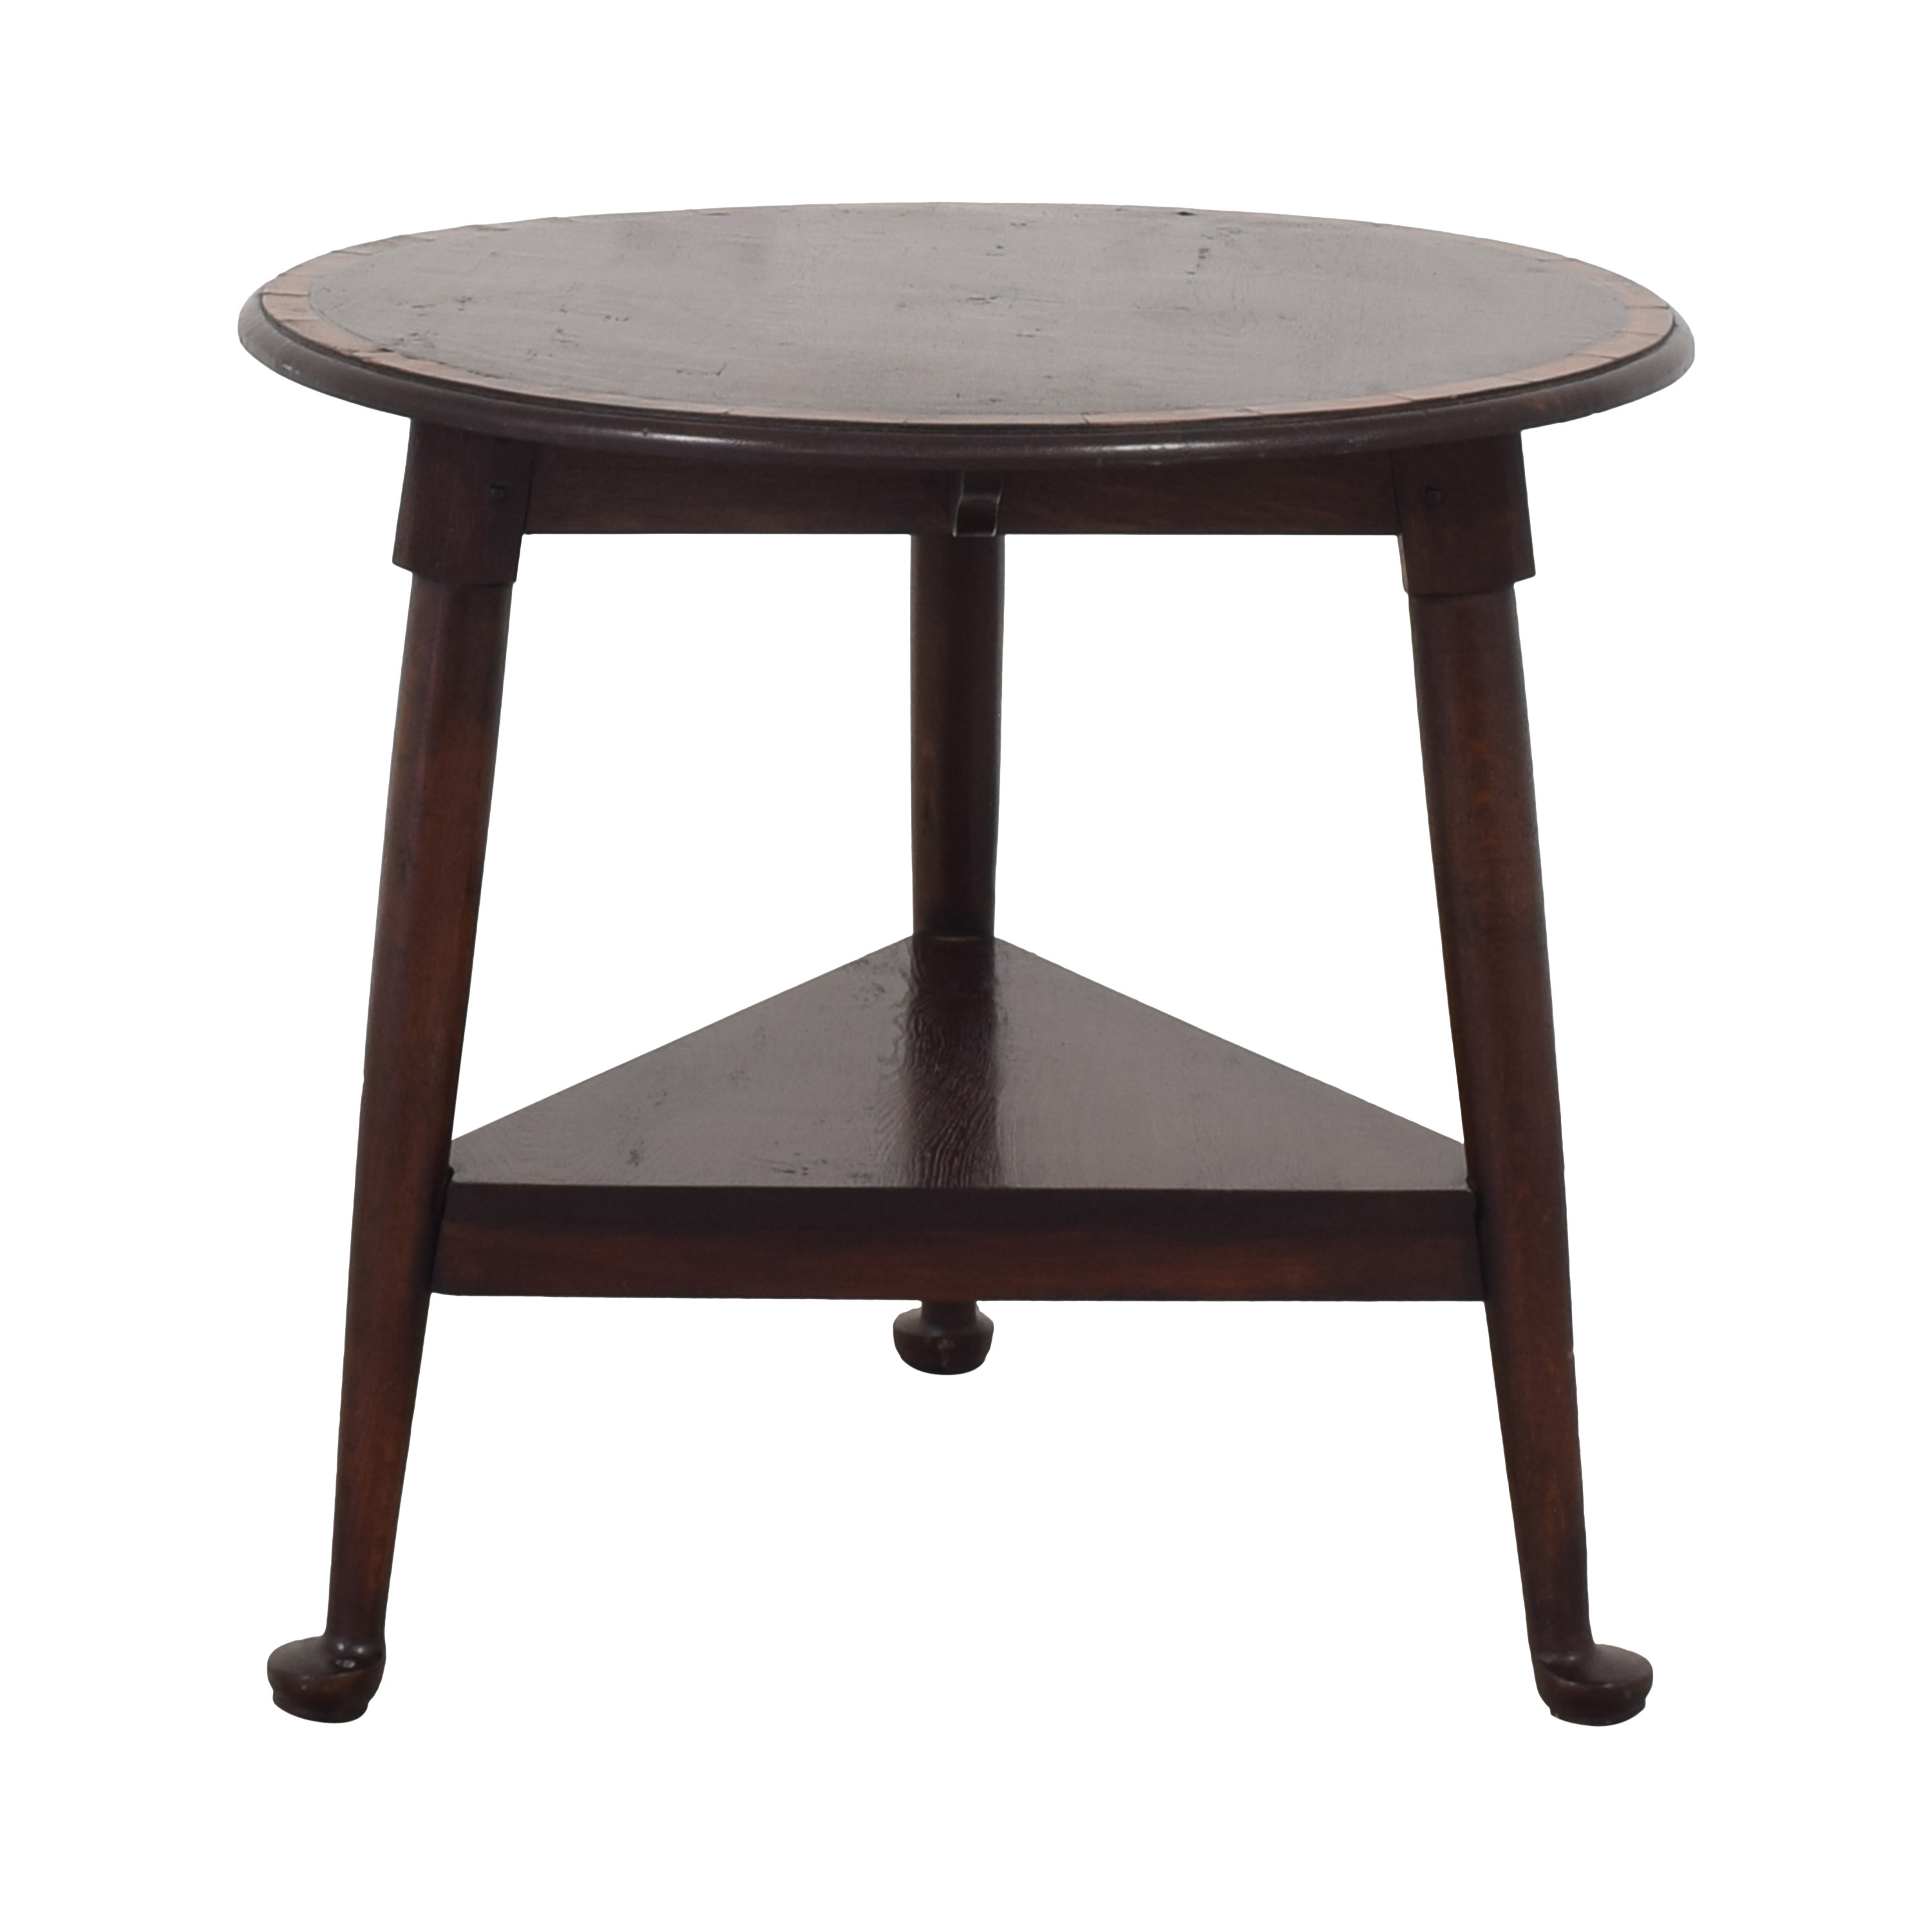 Ethan Allen Ethan Allen Side Table for sale